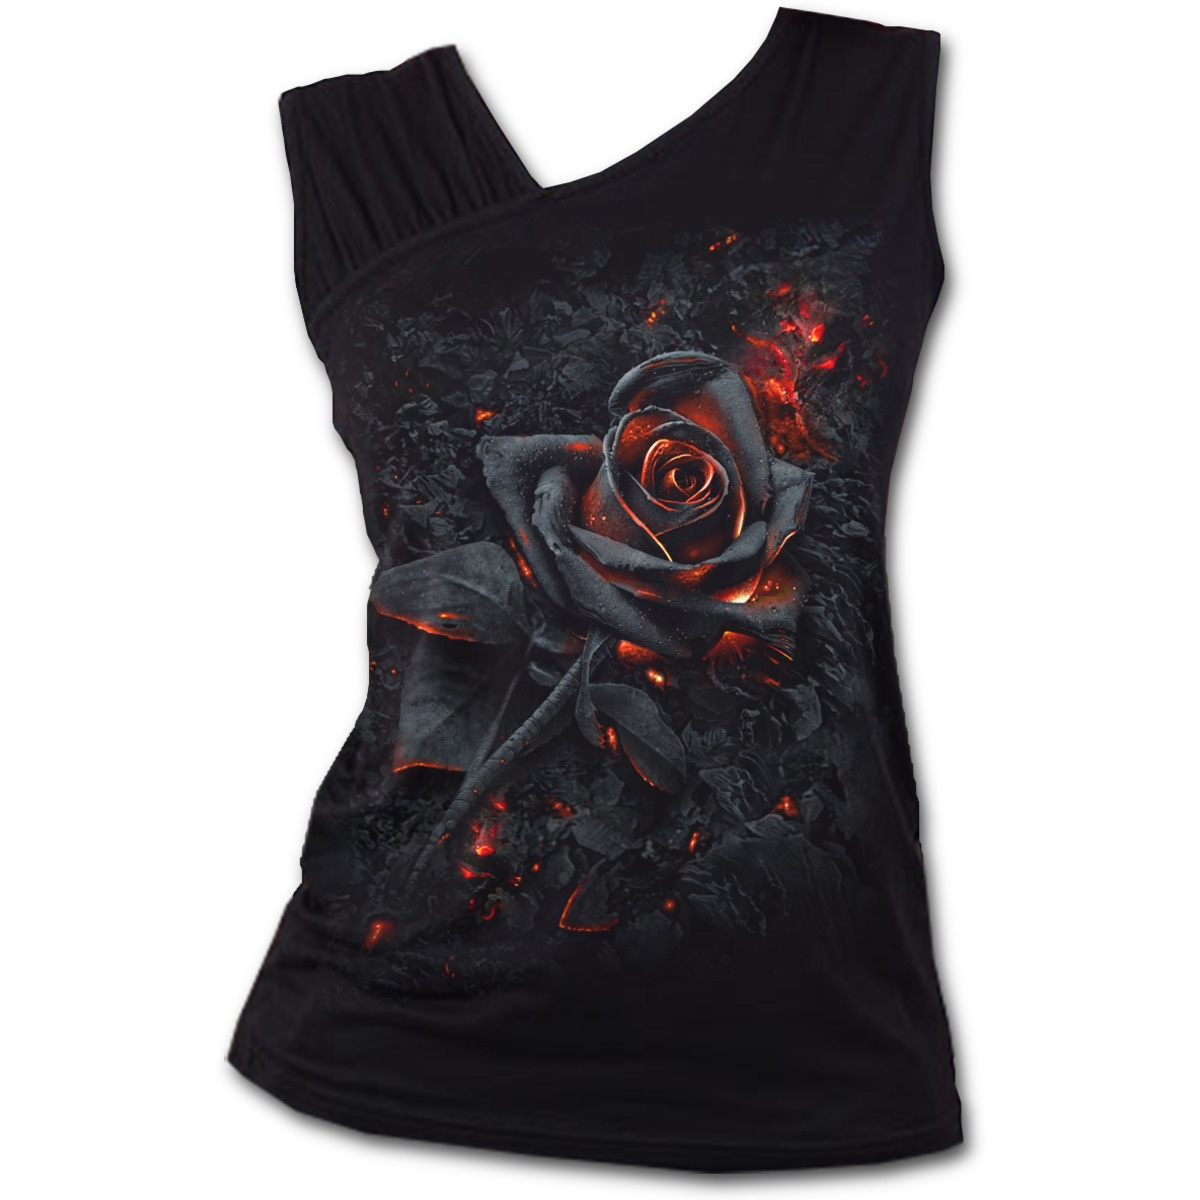 SPIRAL-DIRECT-Ladies-Black-Goth-BURNT-ROSE-Fire-Slant-Vest-Top-All-Sizes thumbnail 5